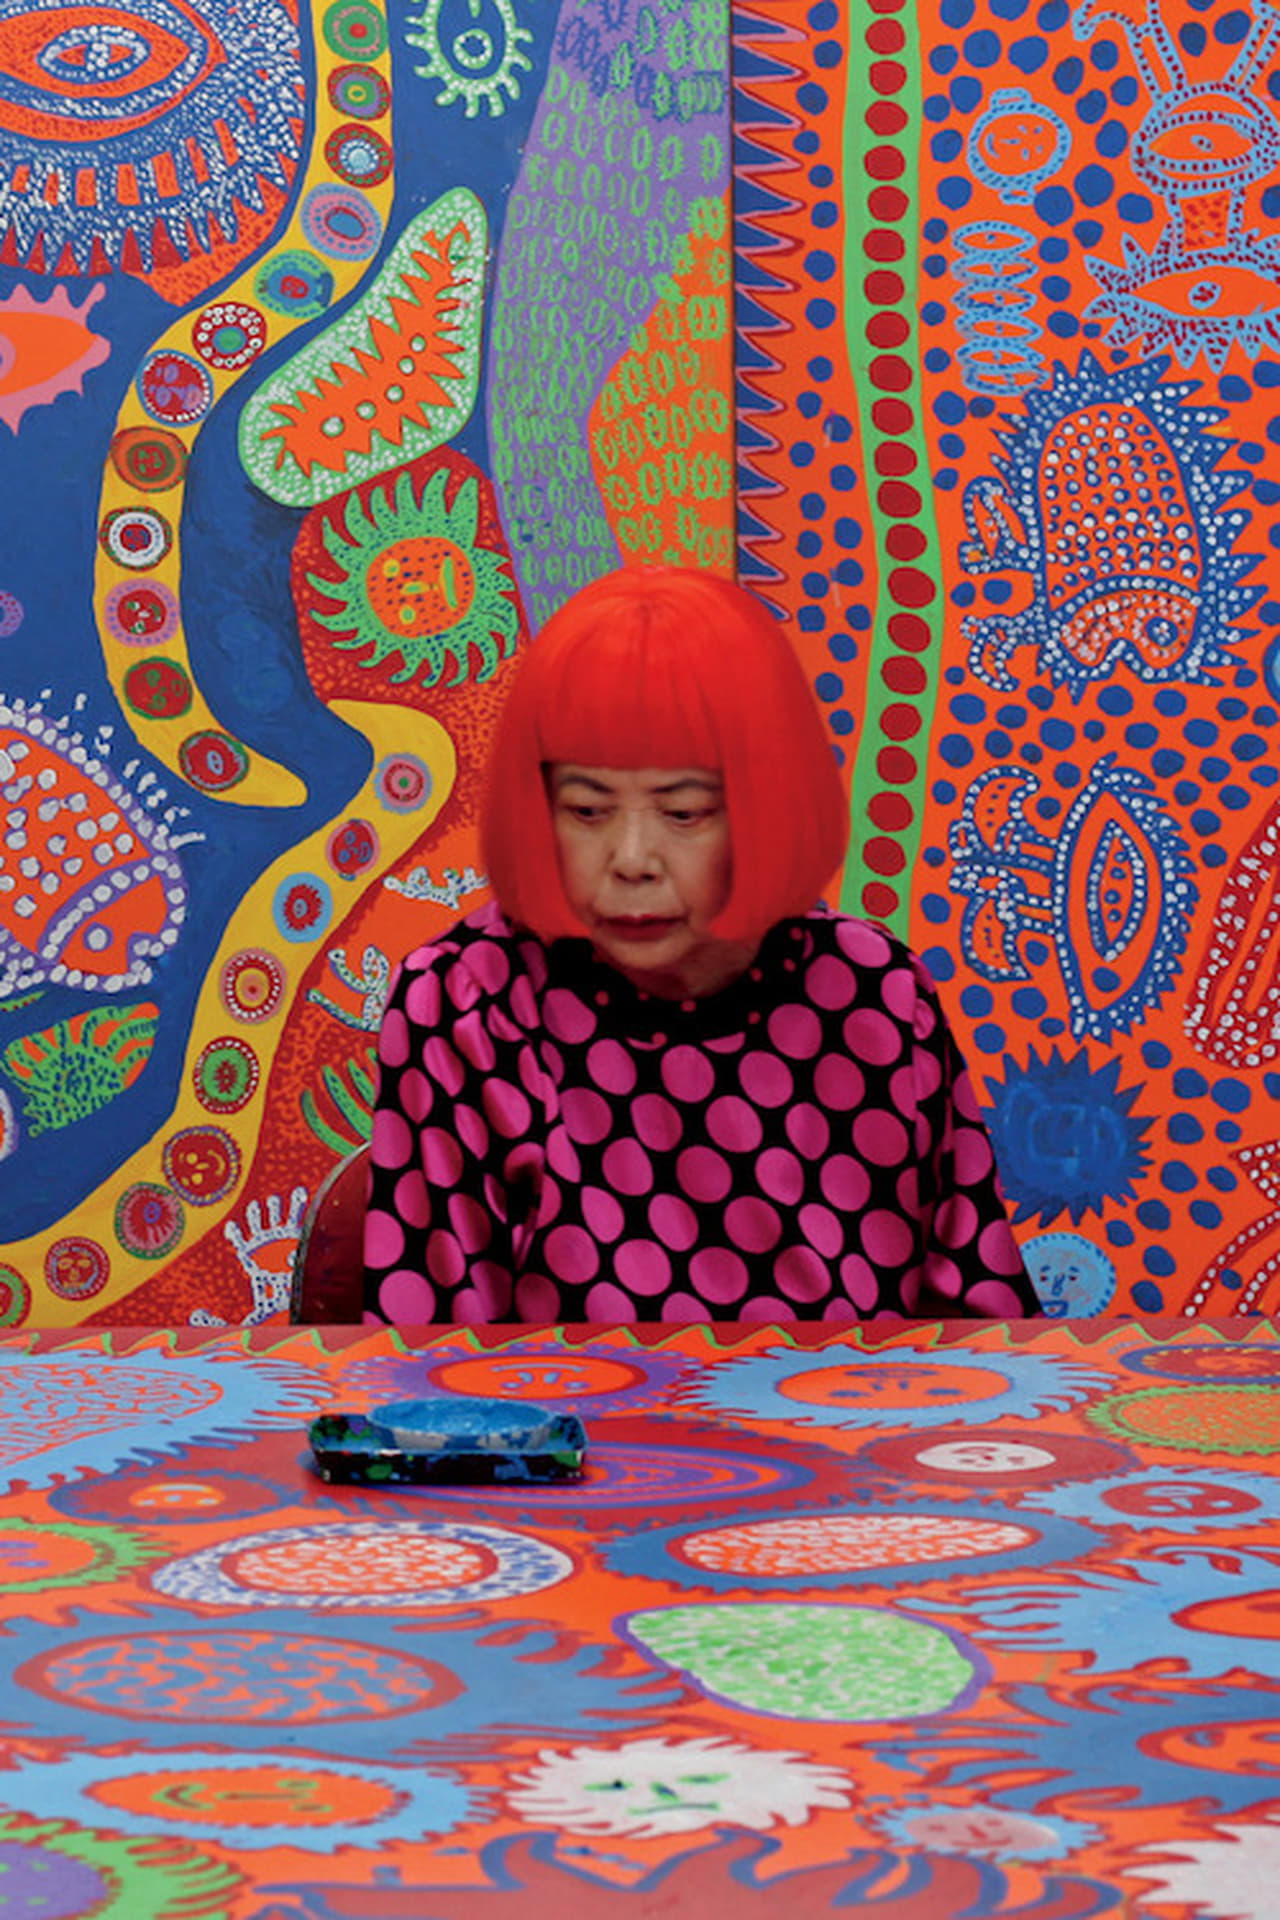 Polka Dot Superstar The Amazing World Of Yayoi Kusama 2014 Imdb